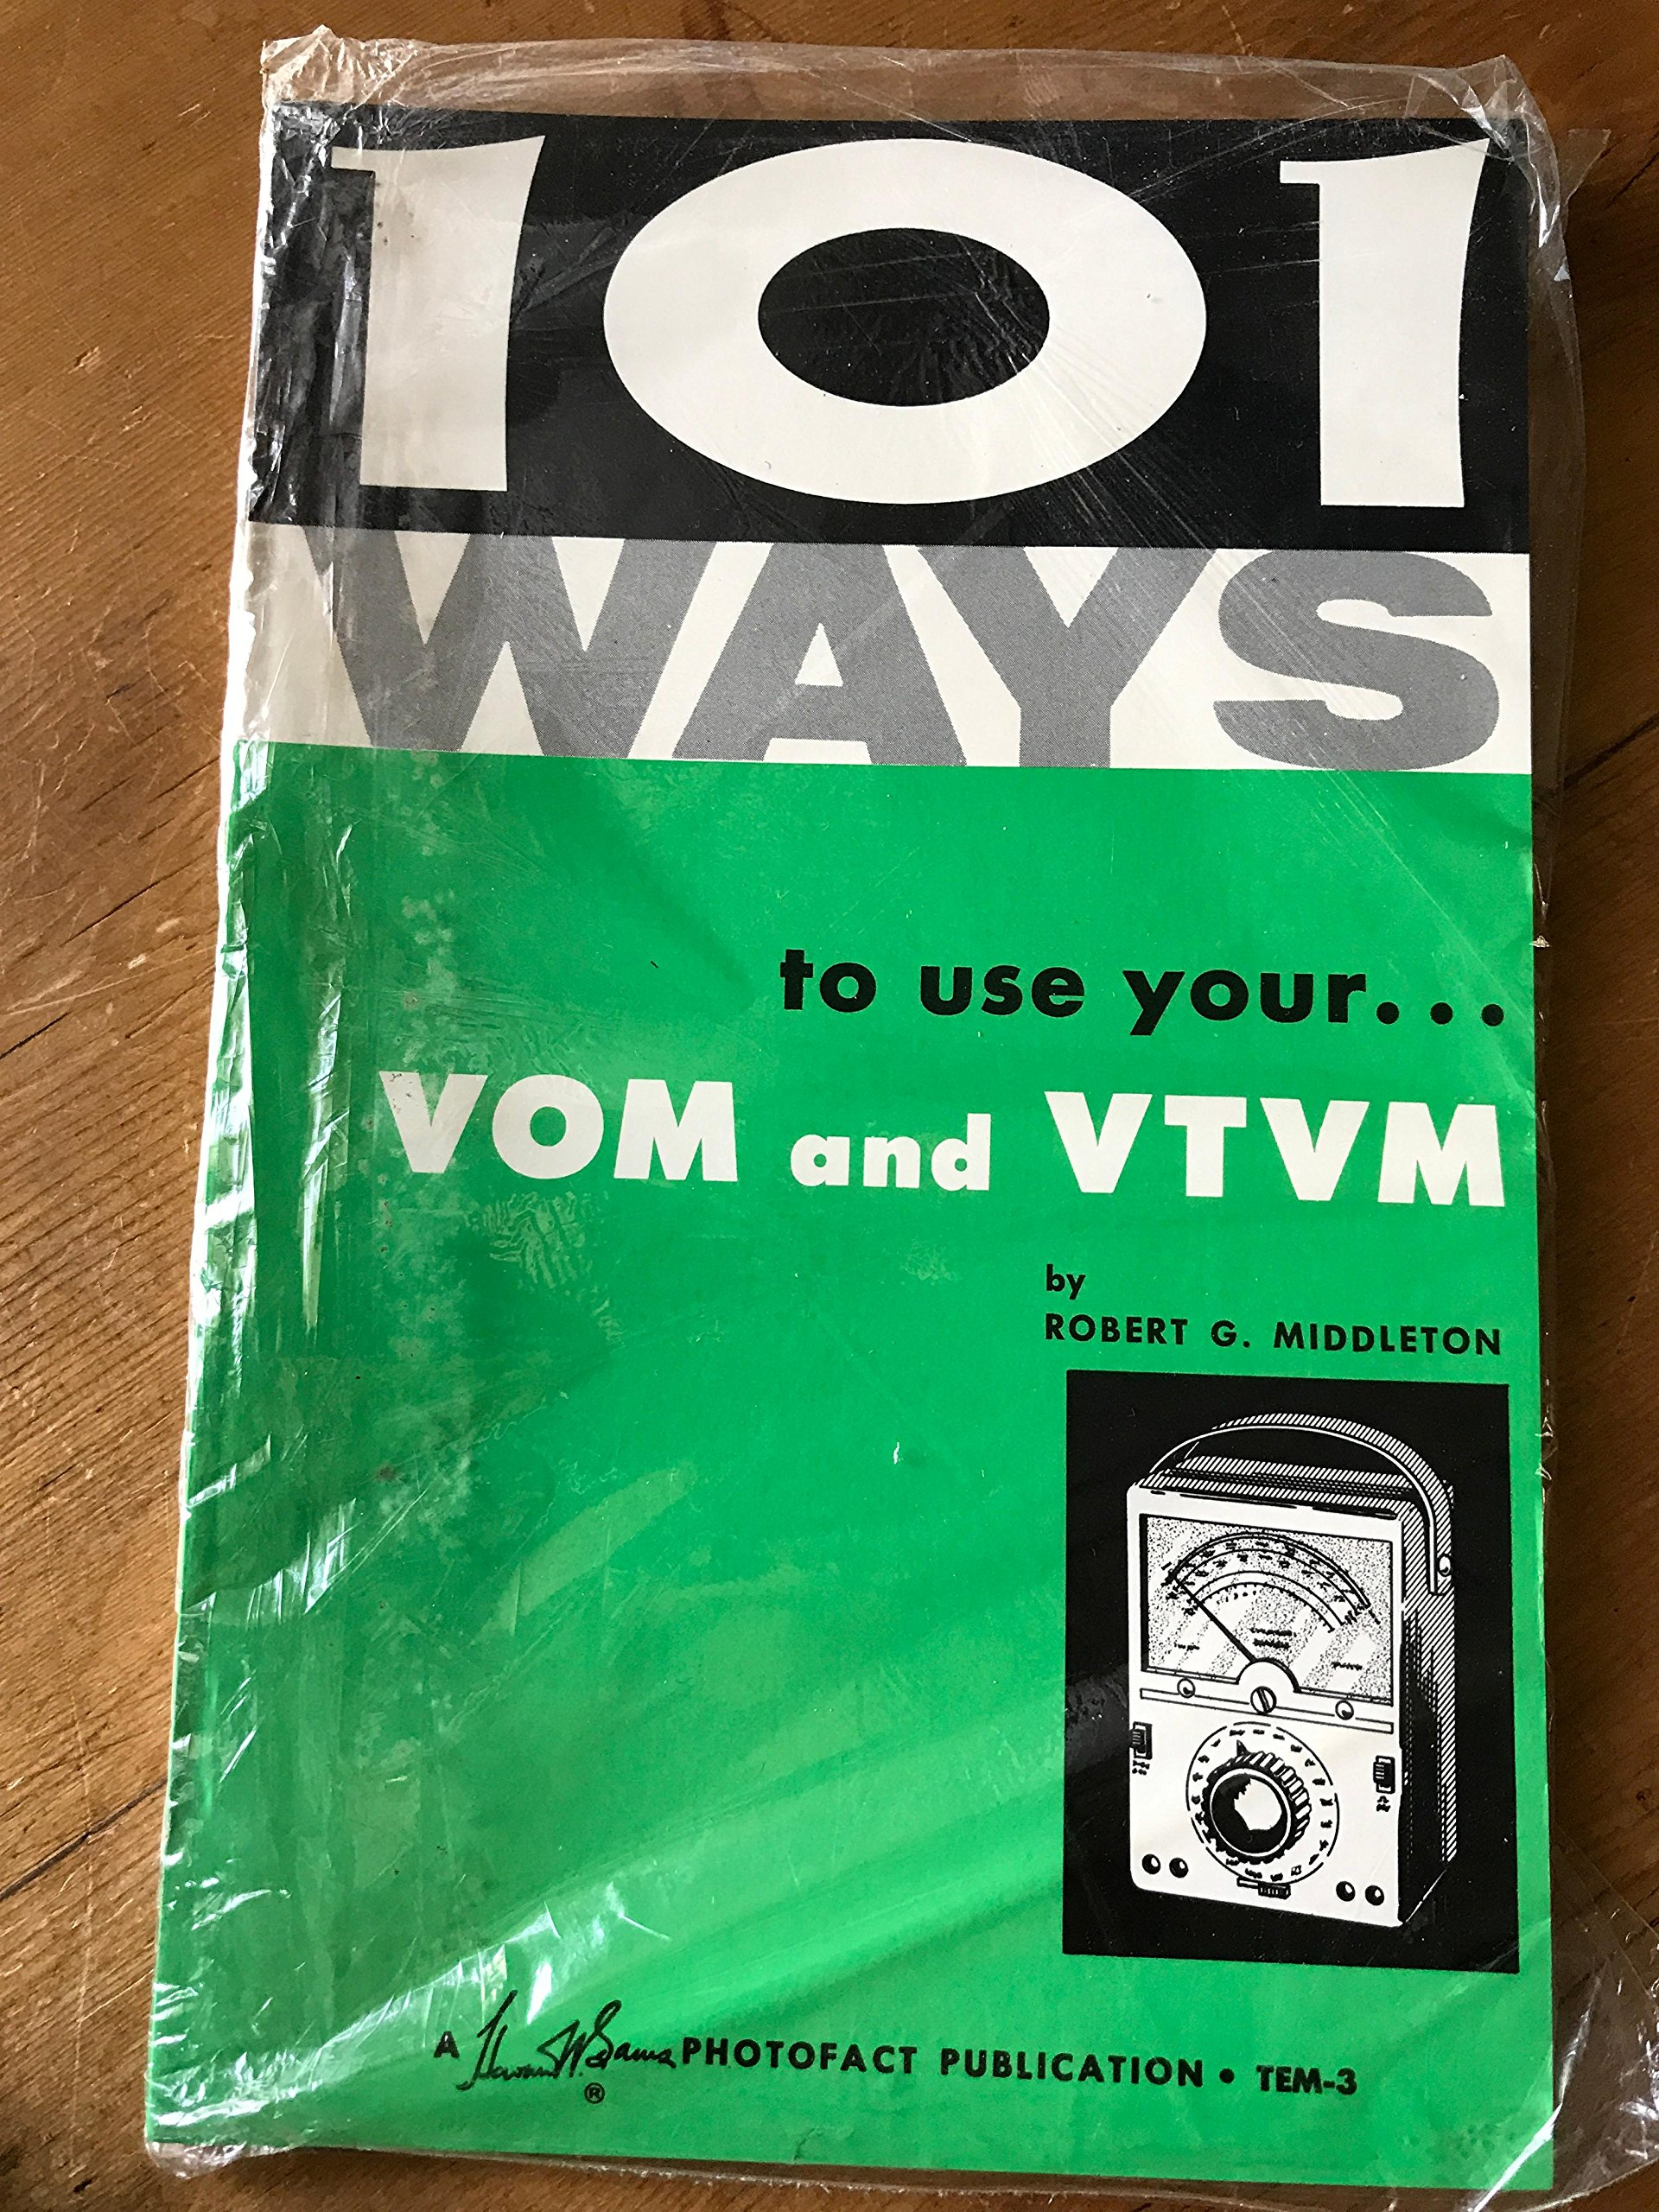 101 Ways to use your VOM and VTVM - TEM-3: Robert G Middleton: Amazon.com:  Books